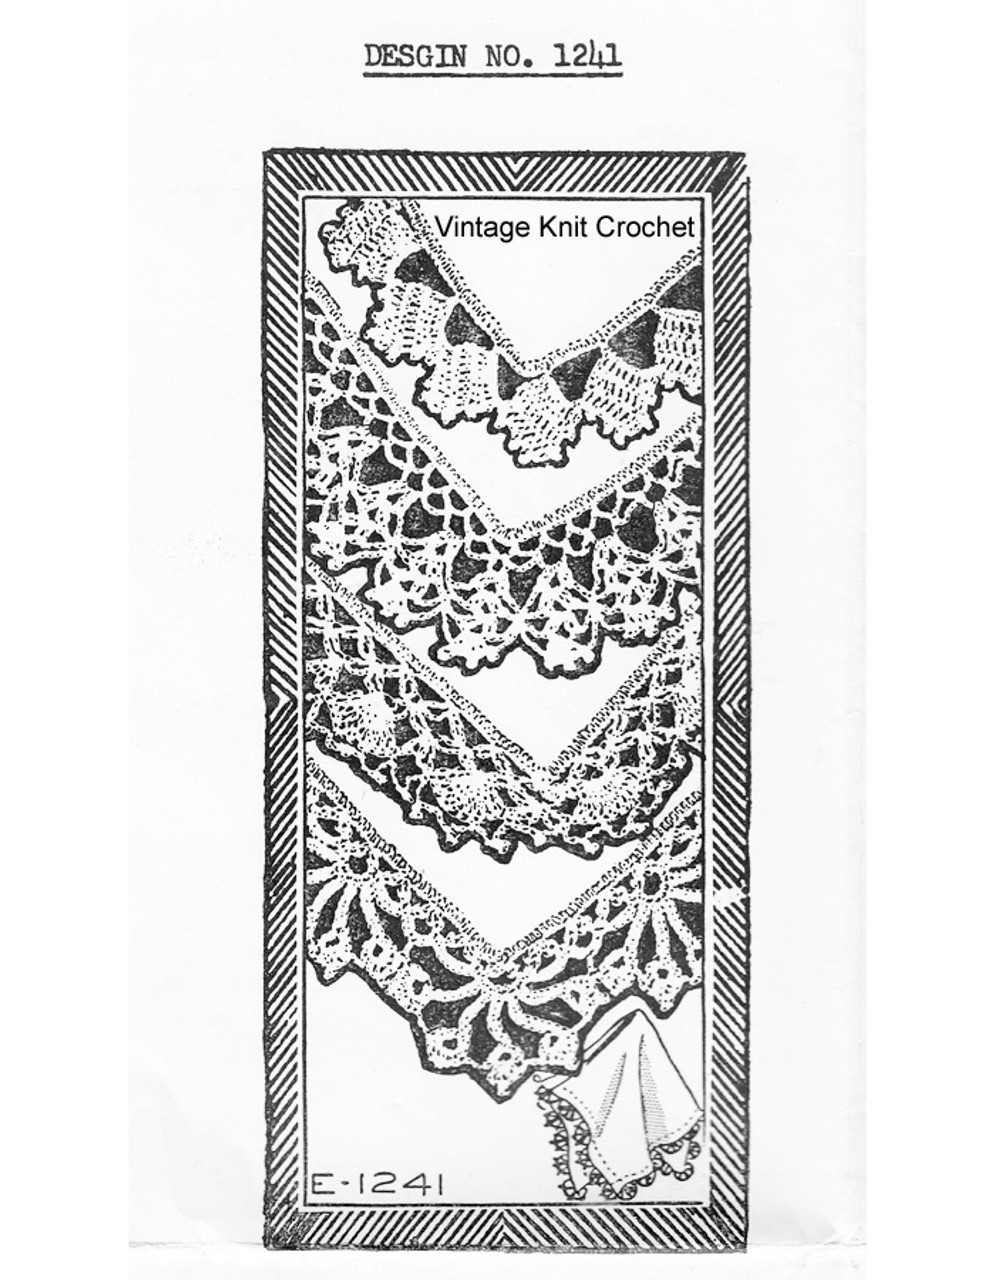 Vintage Crochet Edgings Pattern Design 1241